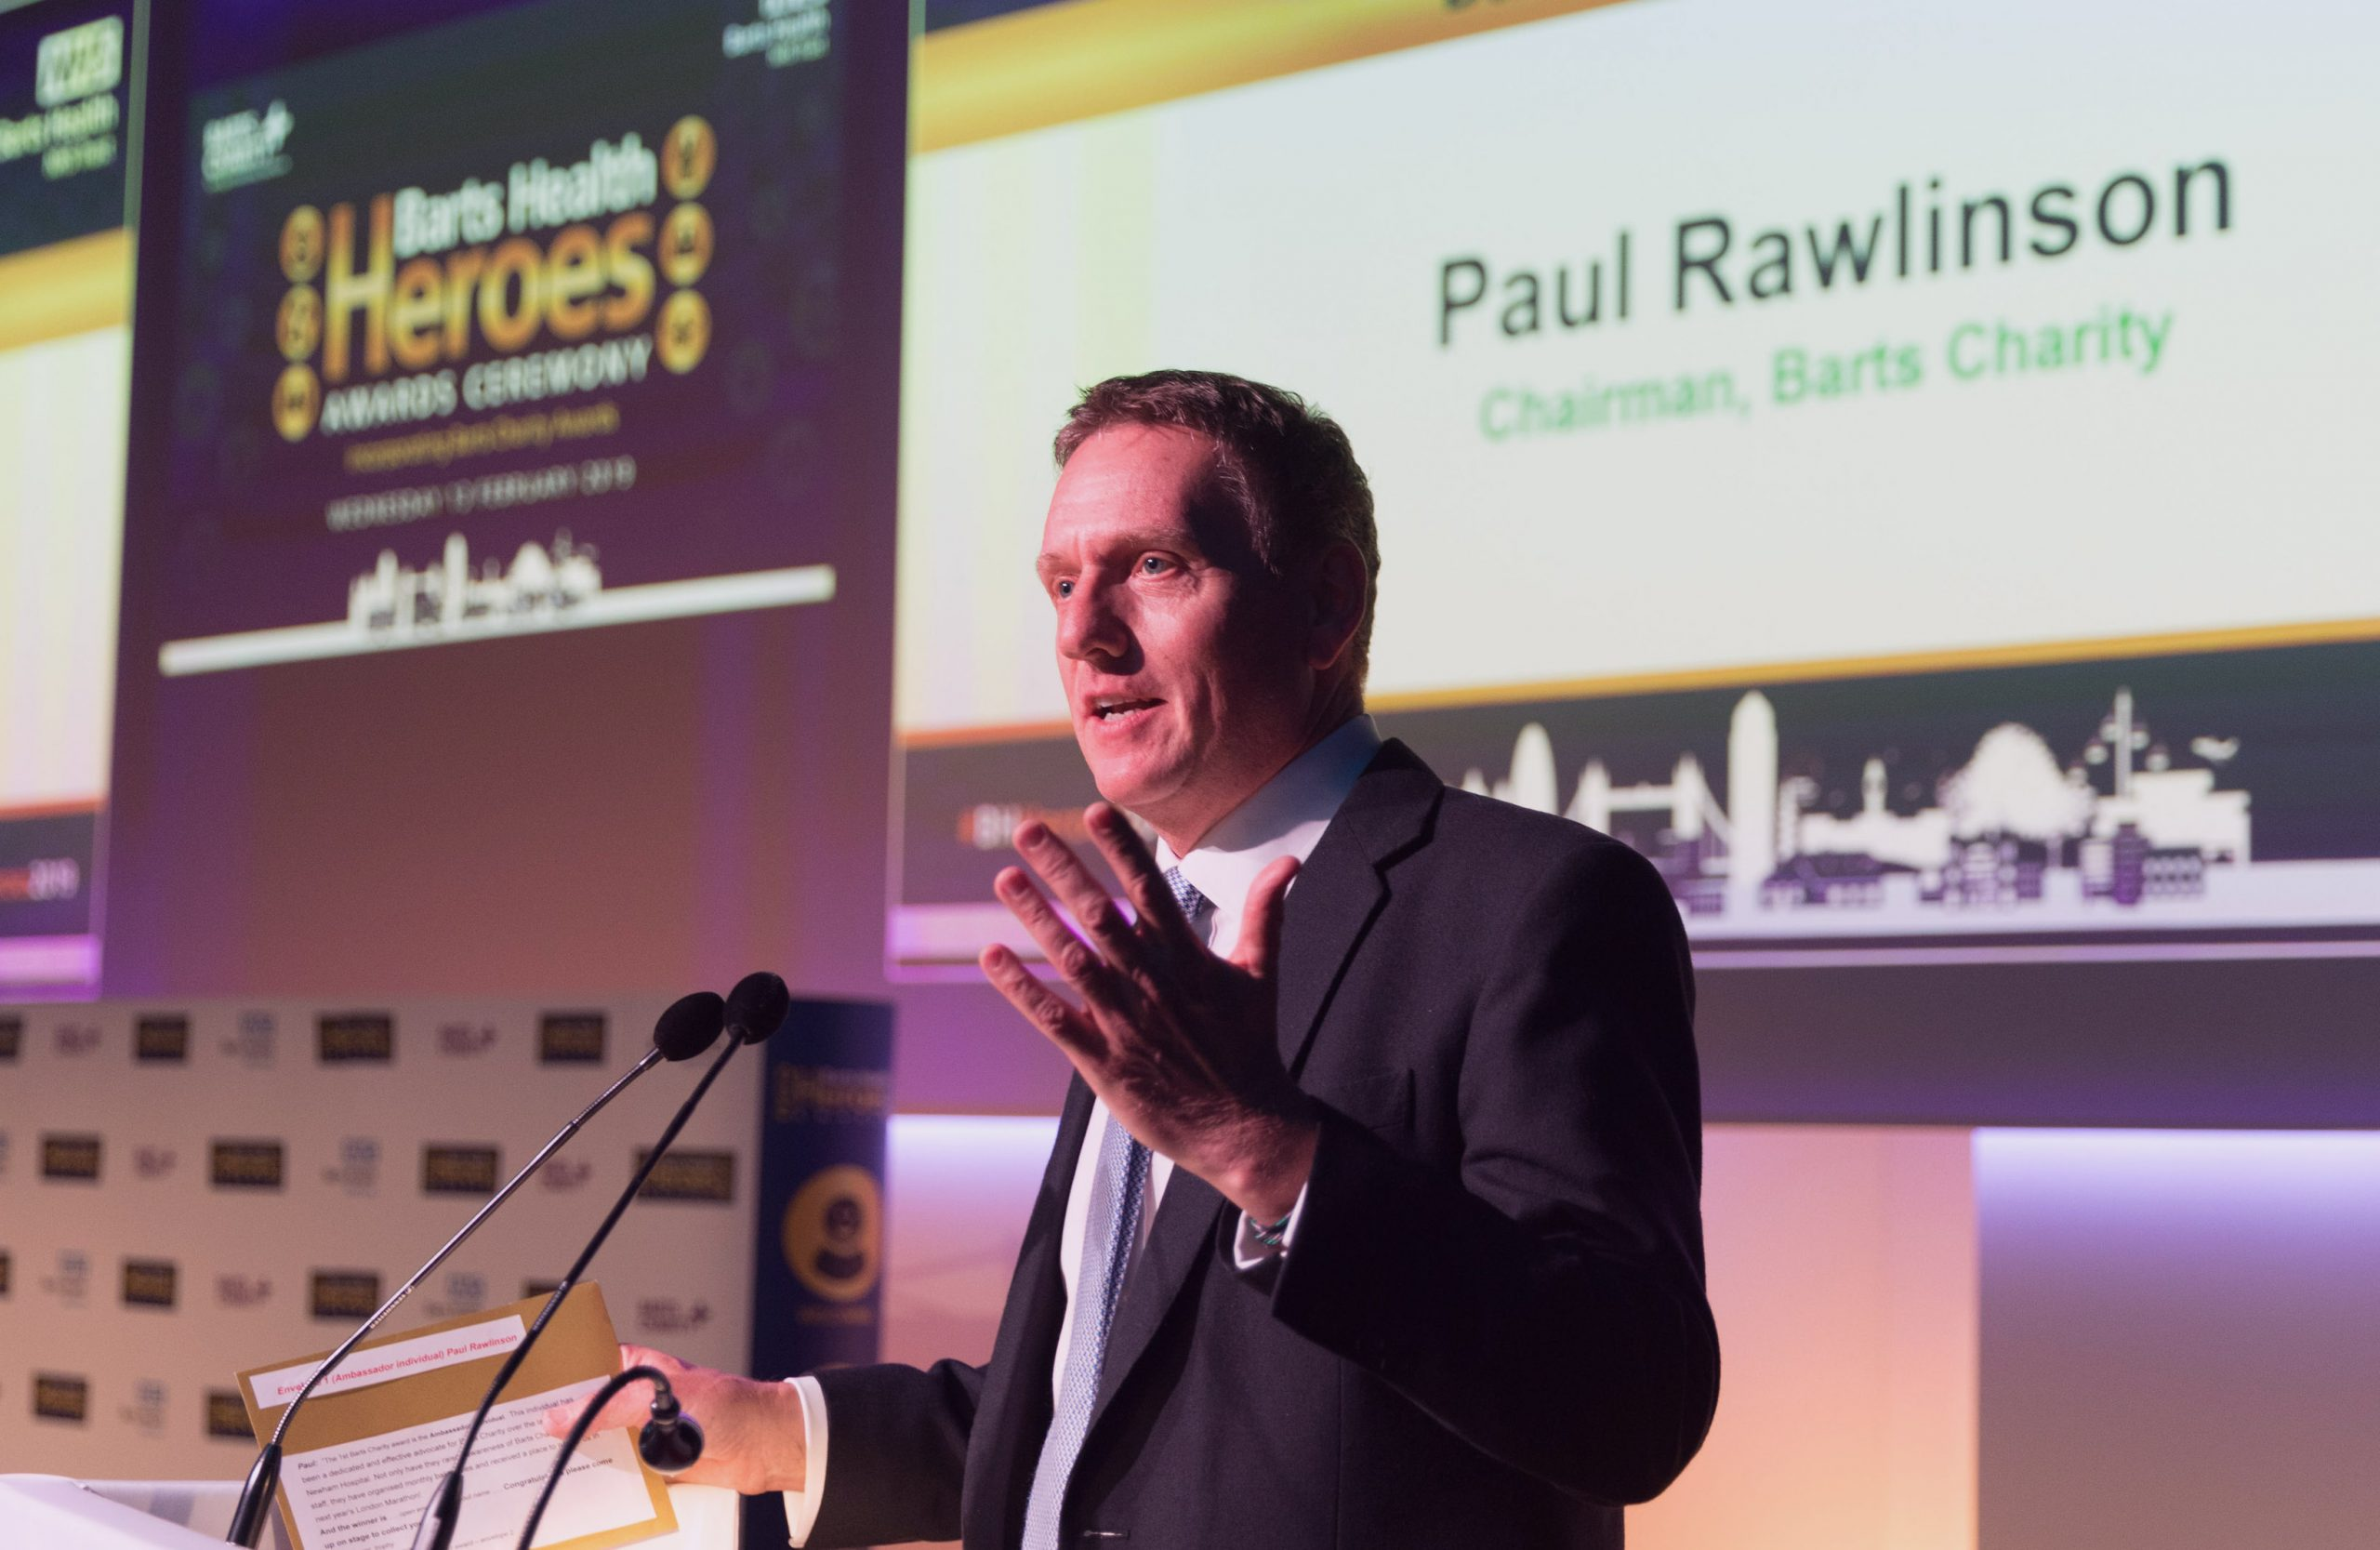 Barts Charity chairman Paul Rawlinson speaks at the Barts Health Heroes awards